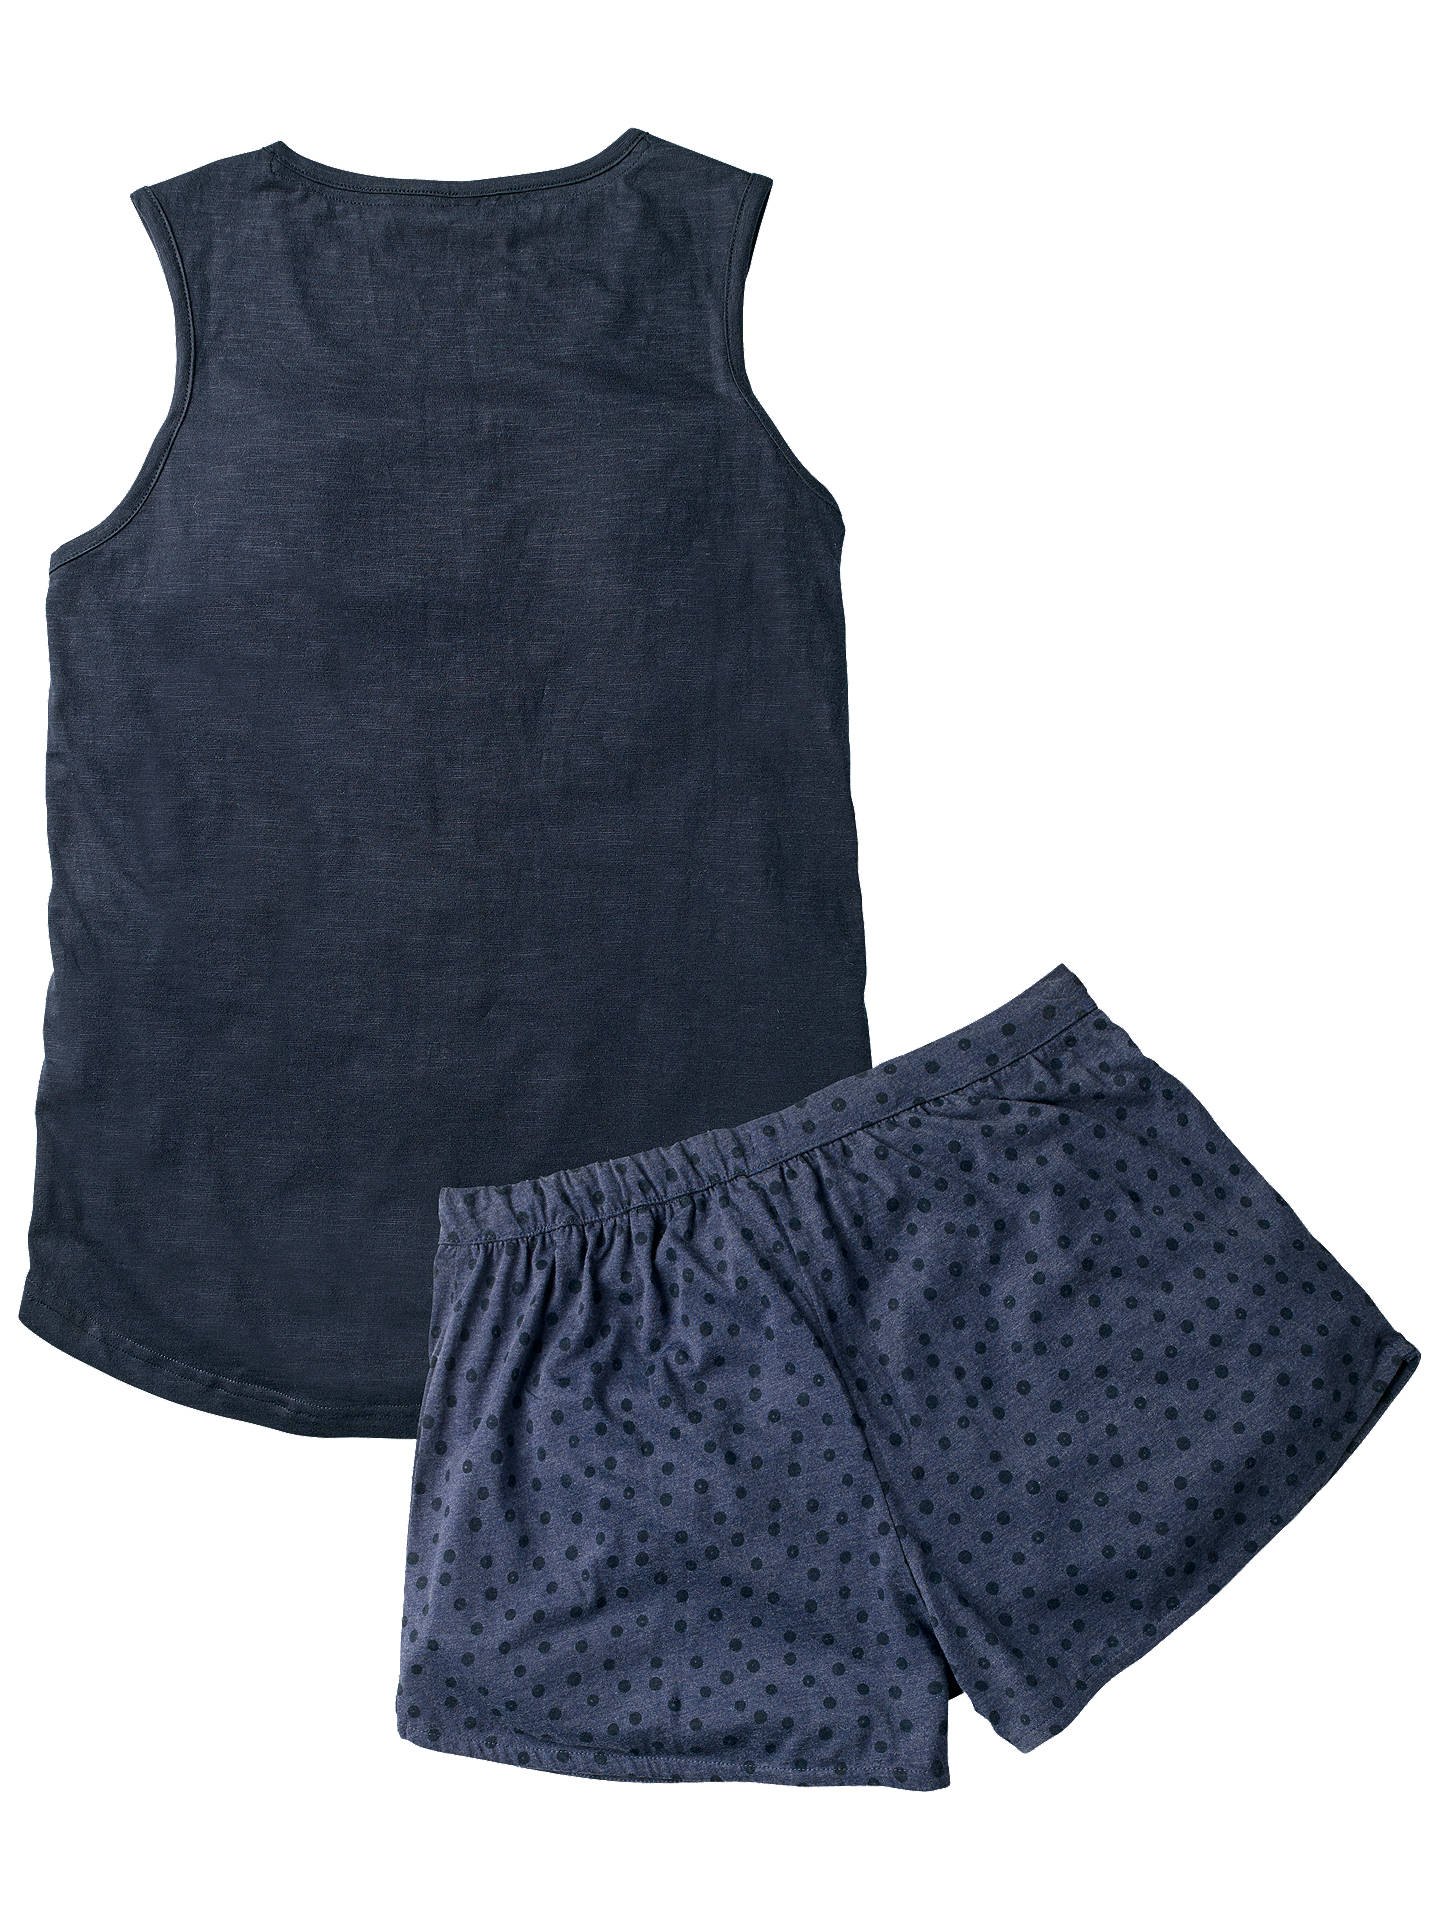 BuyFat Face Oh Deer Pyjama Short And Top Set, Navy, 6 Online at johnlewis.com